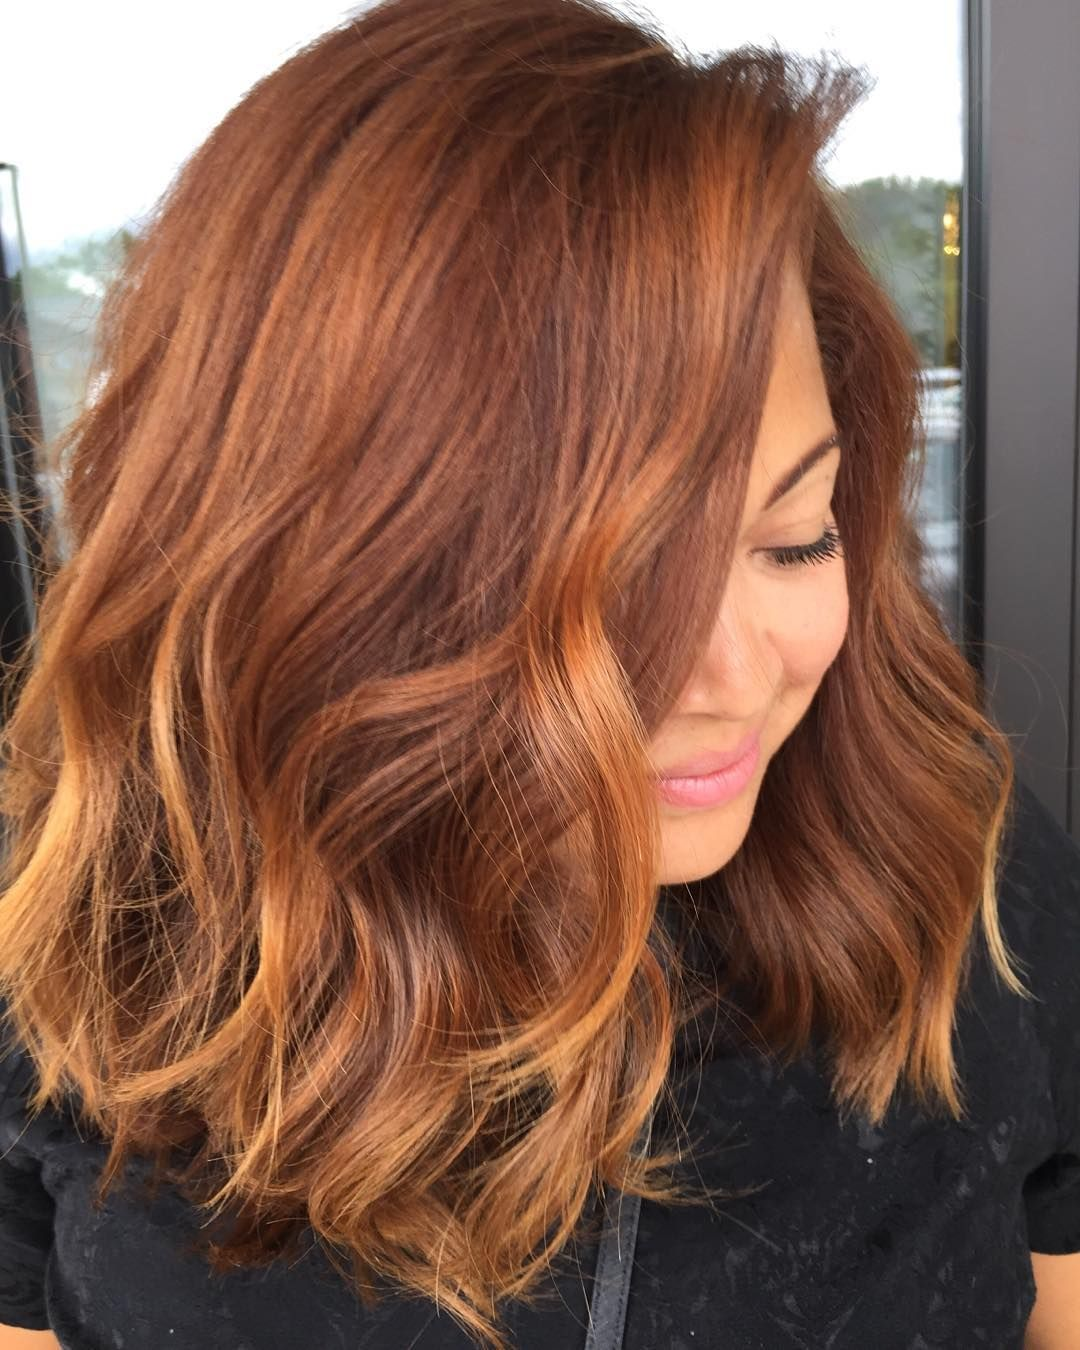 Pumpkin Spice Hair Is Trending For Fall This Is What It Looks Like